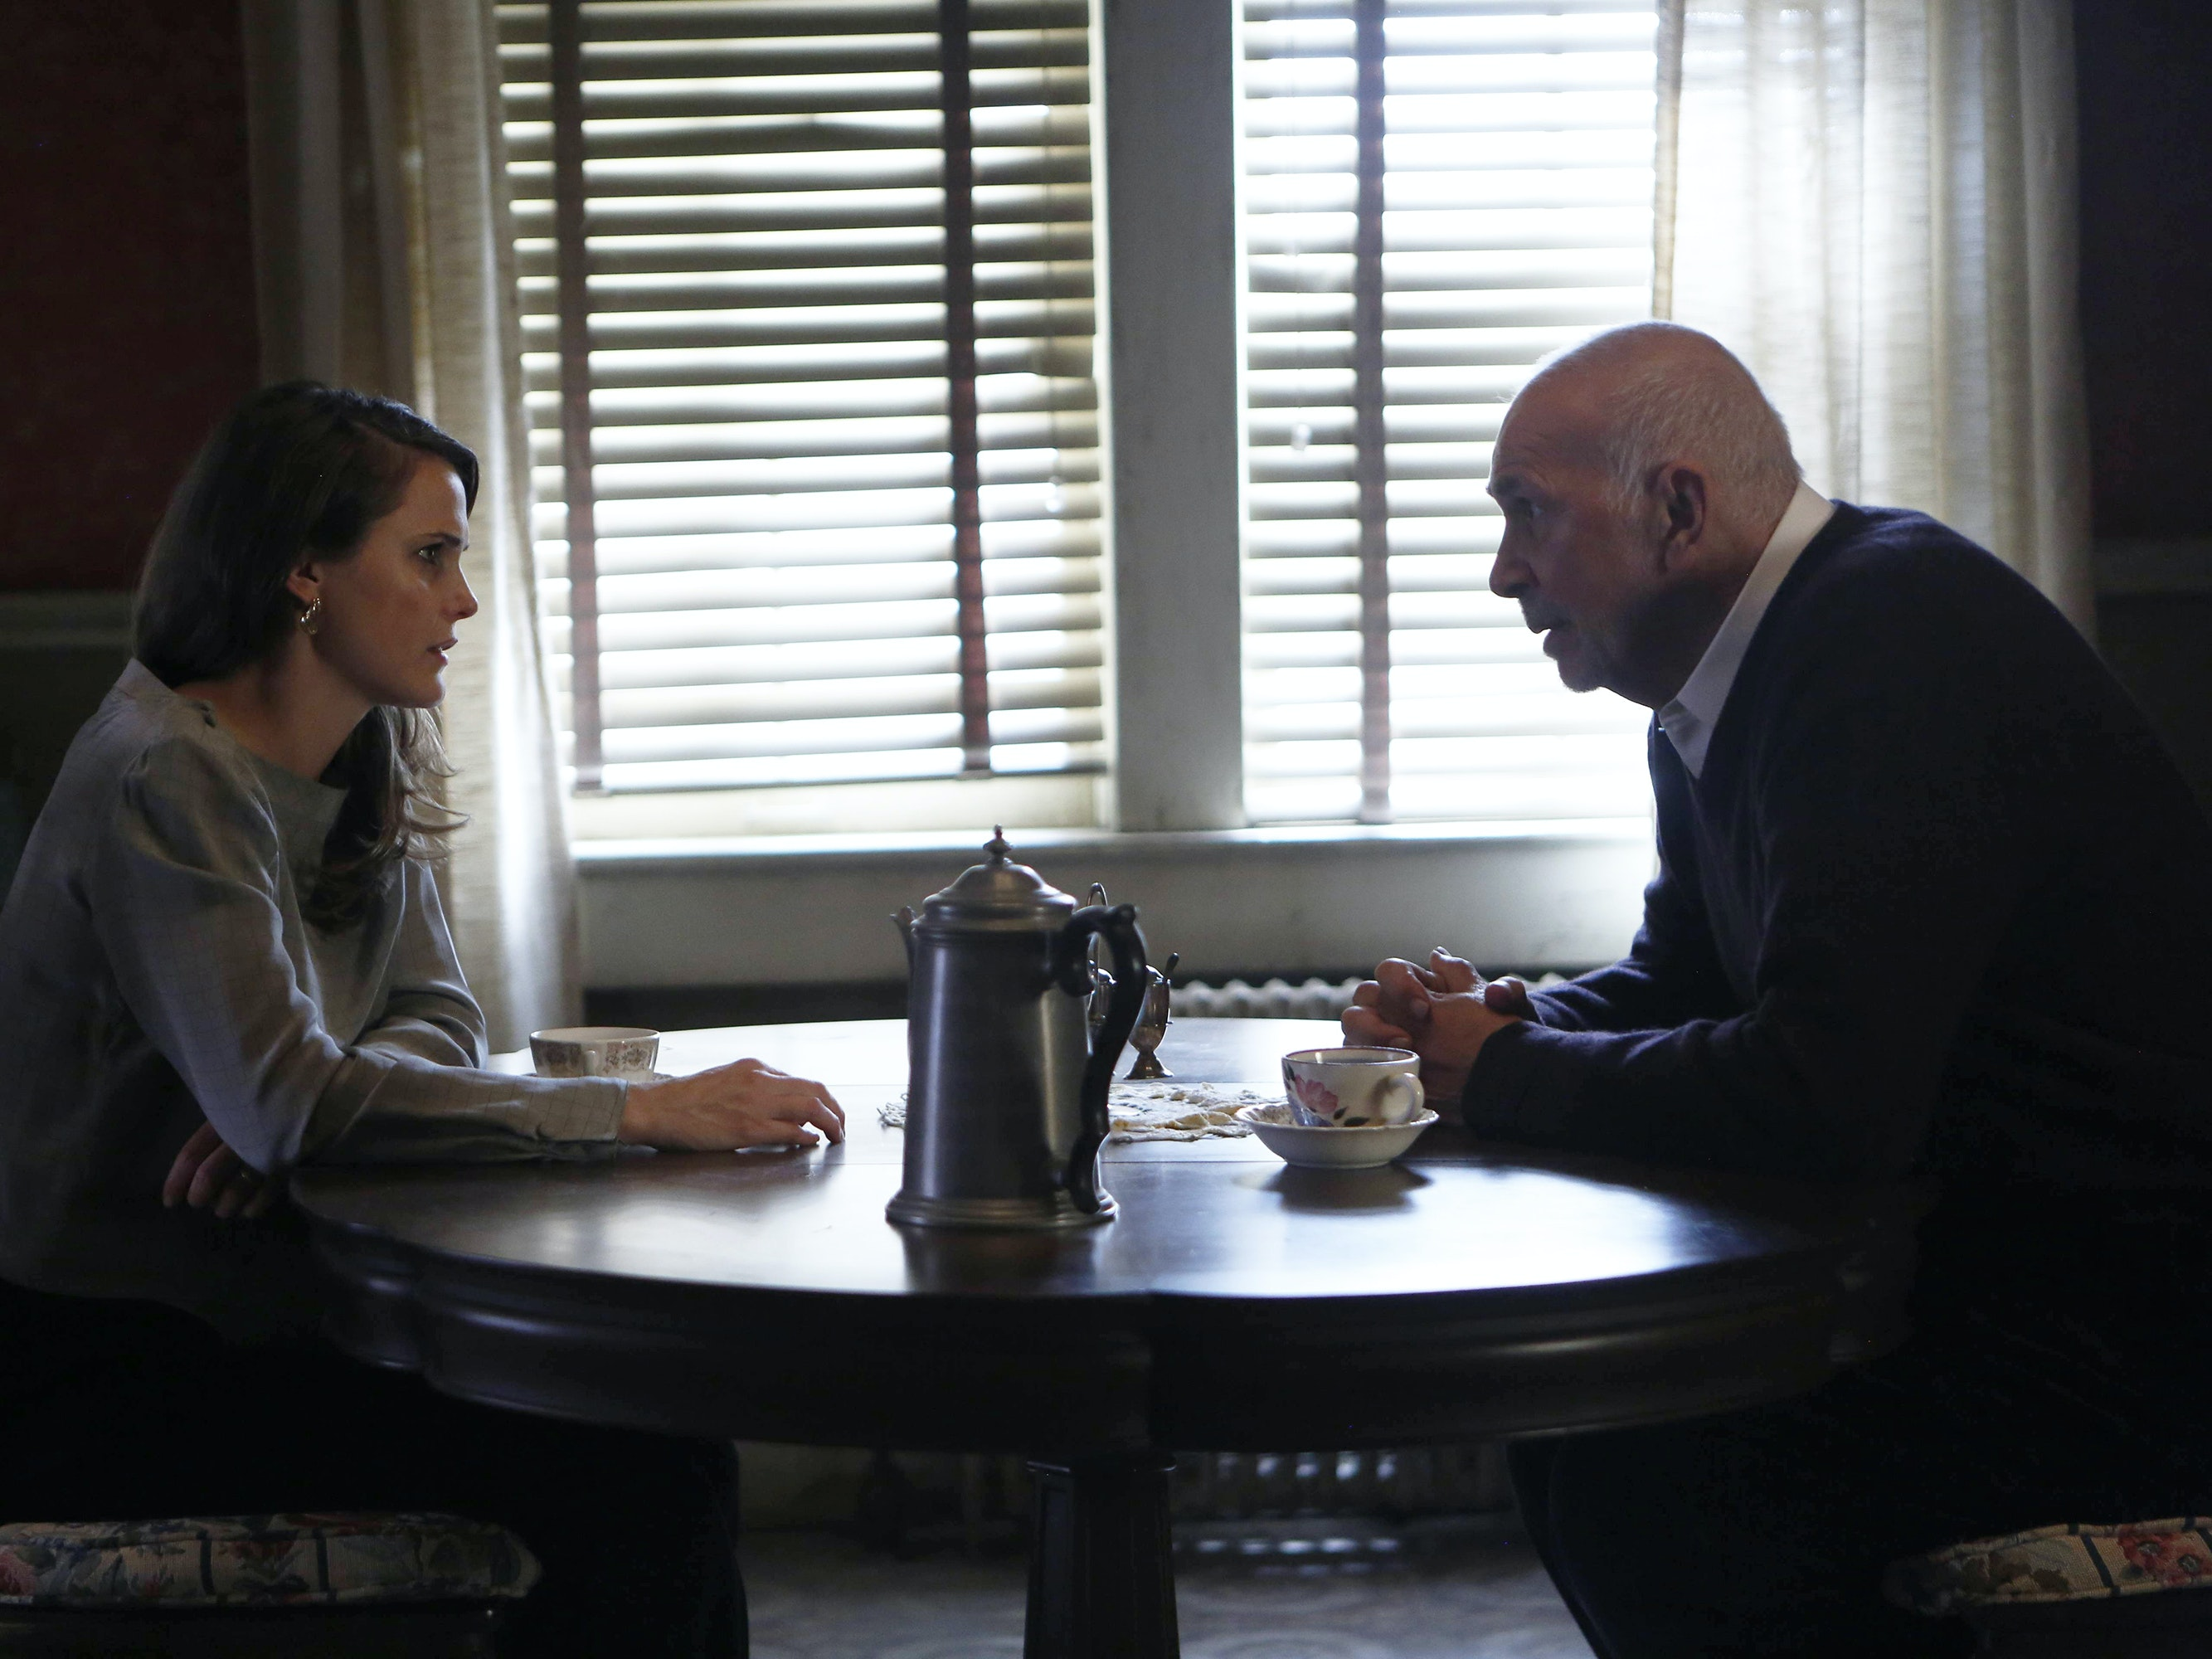 From Don to Agent Gaad, How Many Lives Can 'The Americans' Ruin in One Episode?